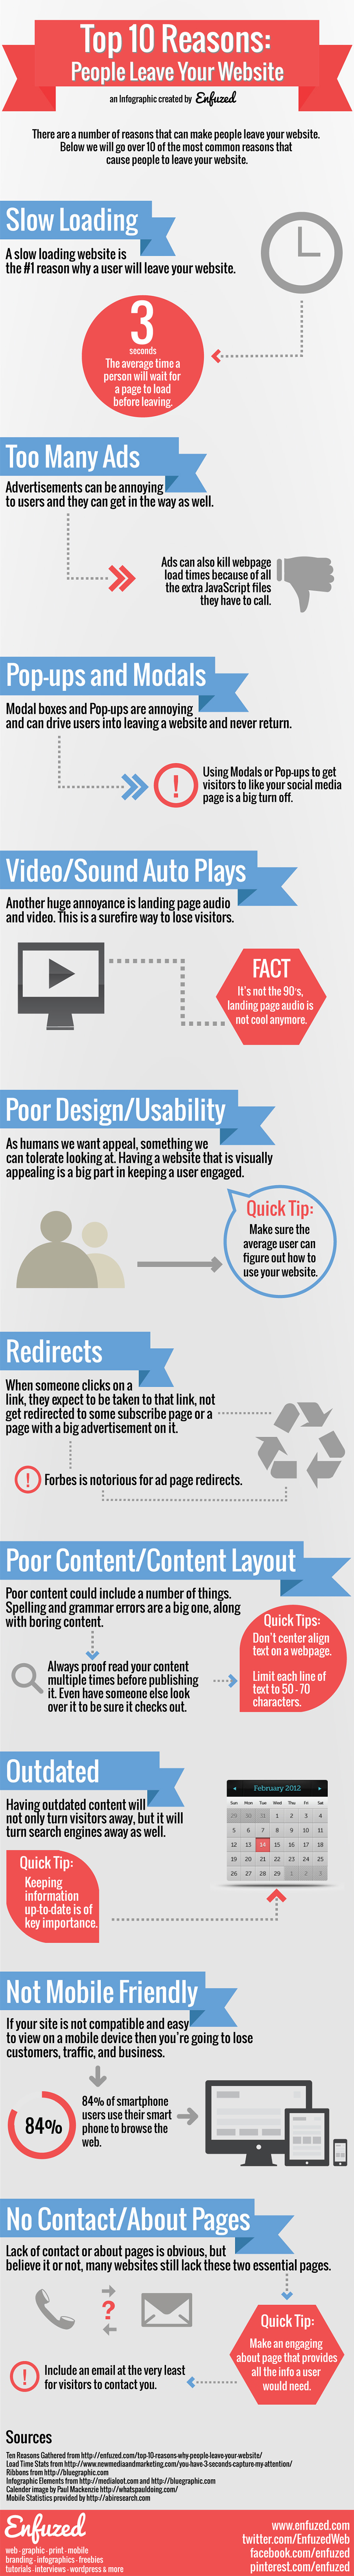 Infographic looks at the top reasons why people leave websites